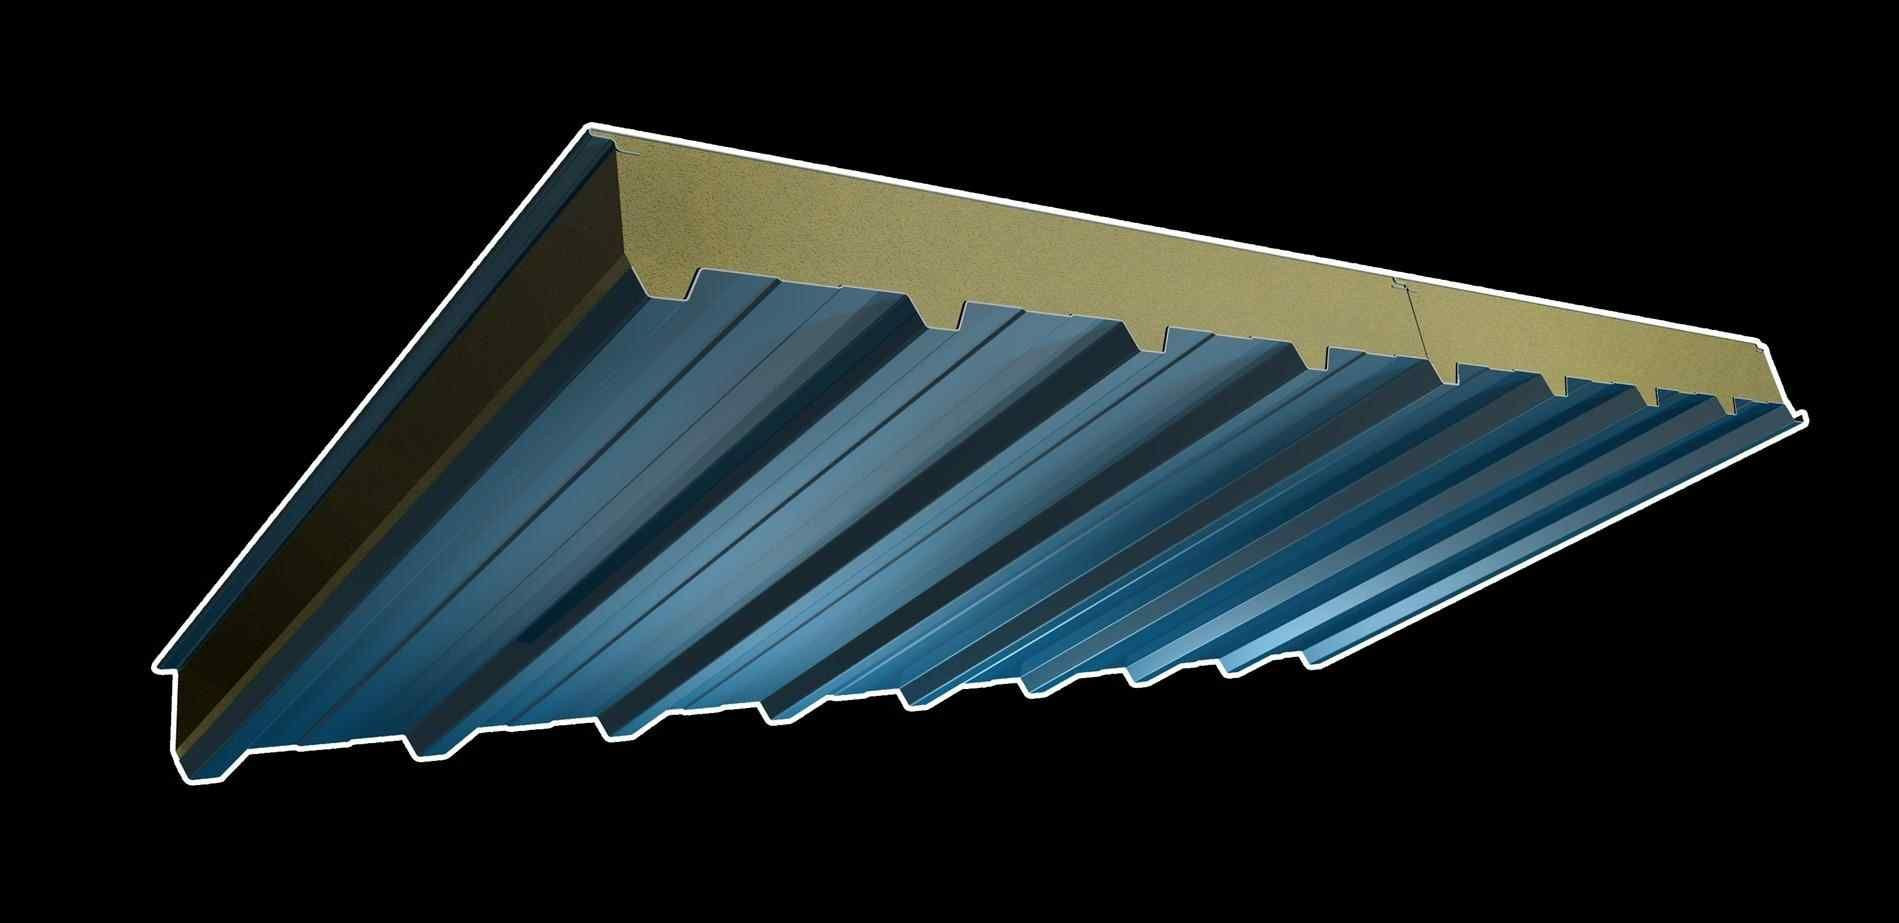 Structural Metal Roof Panels Metal Roof Panels Roof Panels Metal Roof